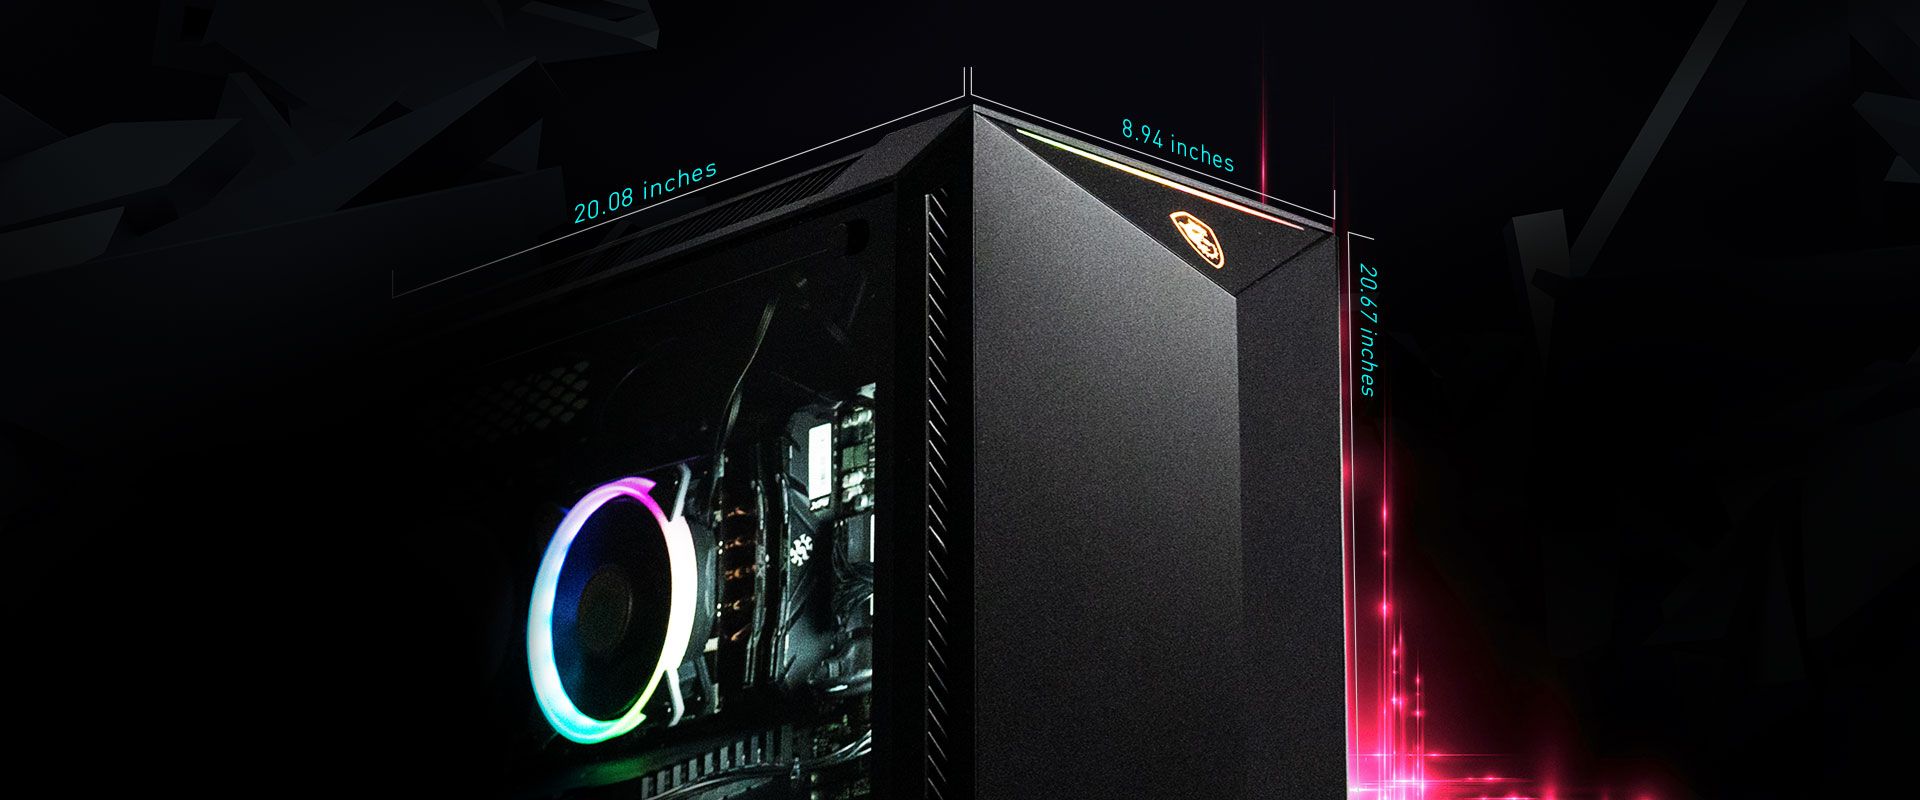 Main specification: MS GUNGNIR 100 CASE, RTX 2060 SUPER, MSI Z390 MOTHERBOARD, 1TB SSD, 9TH GEN CORE I7 and 16GB DDR4 3000MHZ